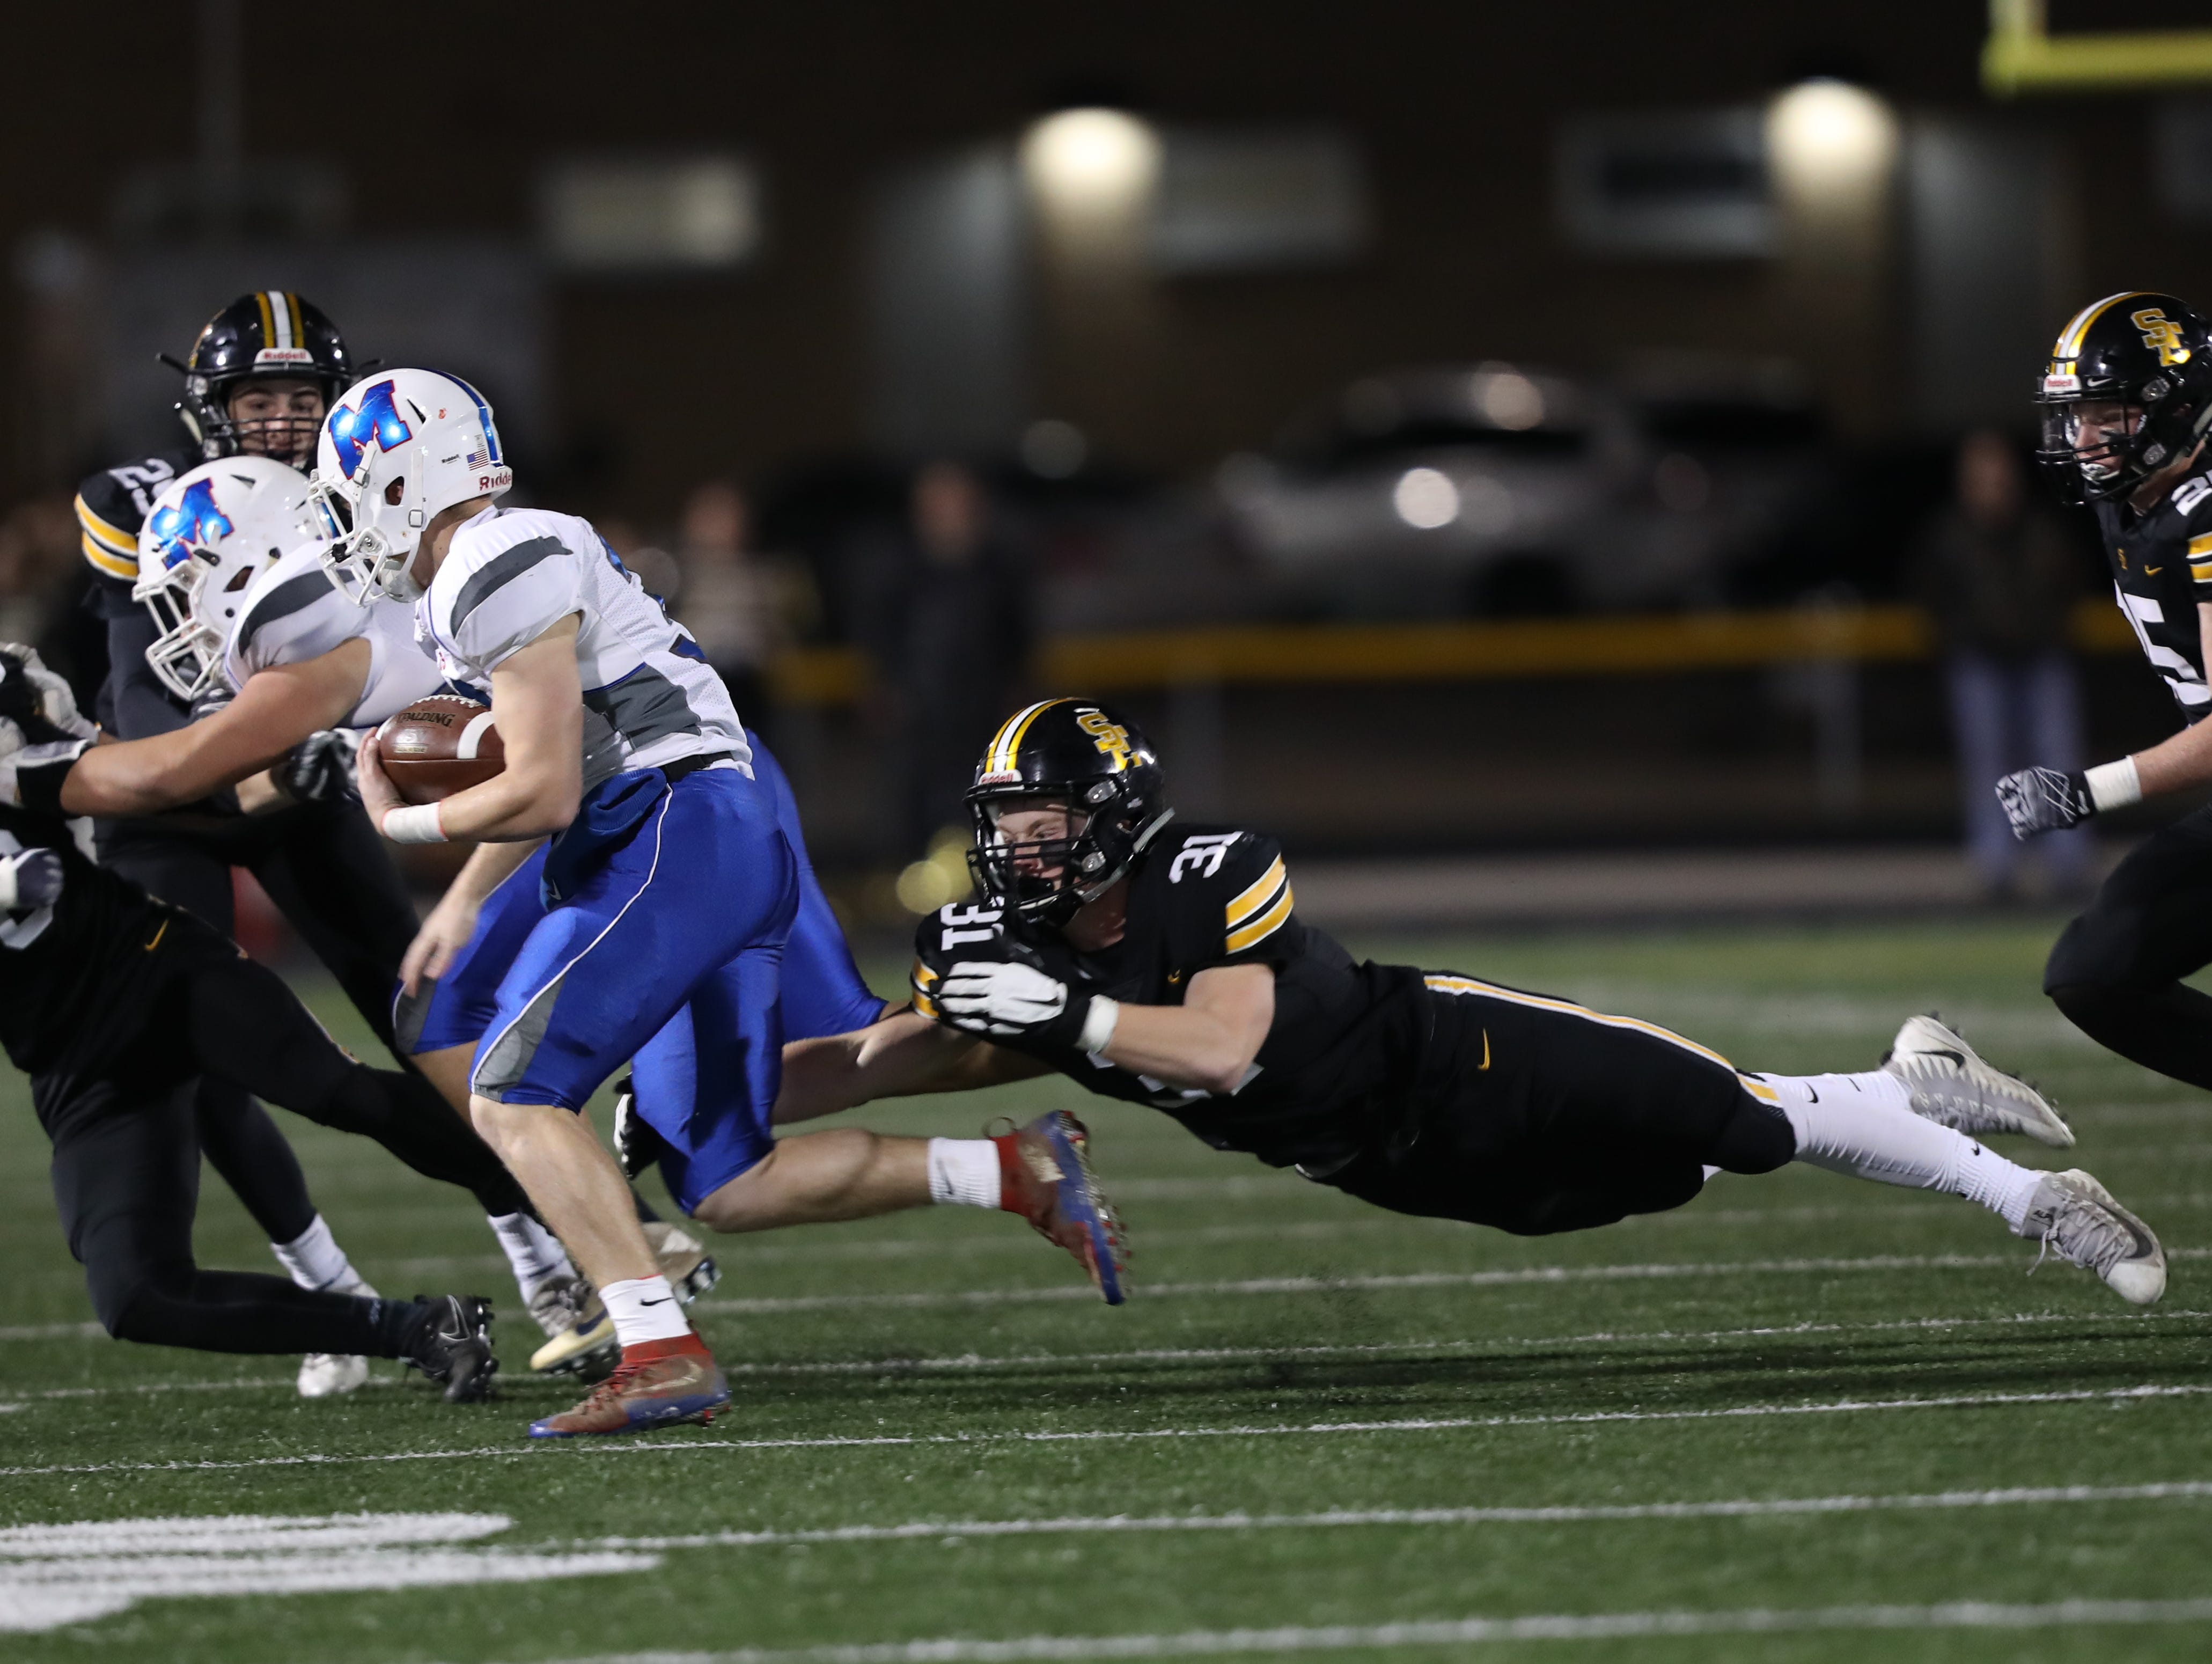 Southeast Polk Rams Carter Olesen (31) dives for a tackle against the Marshalltown Bobcats at SE Polk Stadium. The Rams beat the Bobcats 56 to 7.